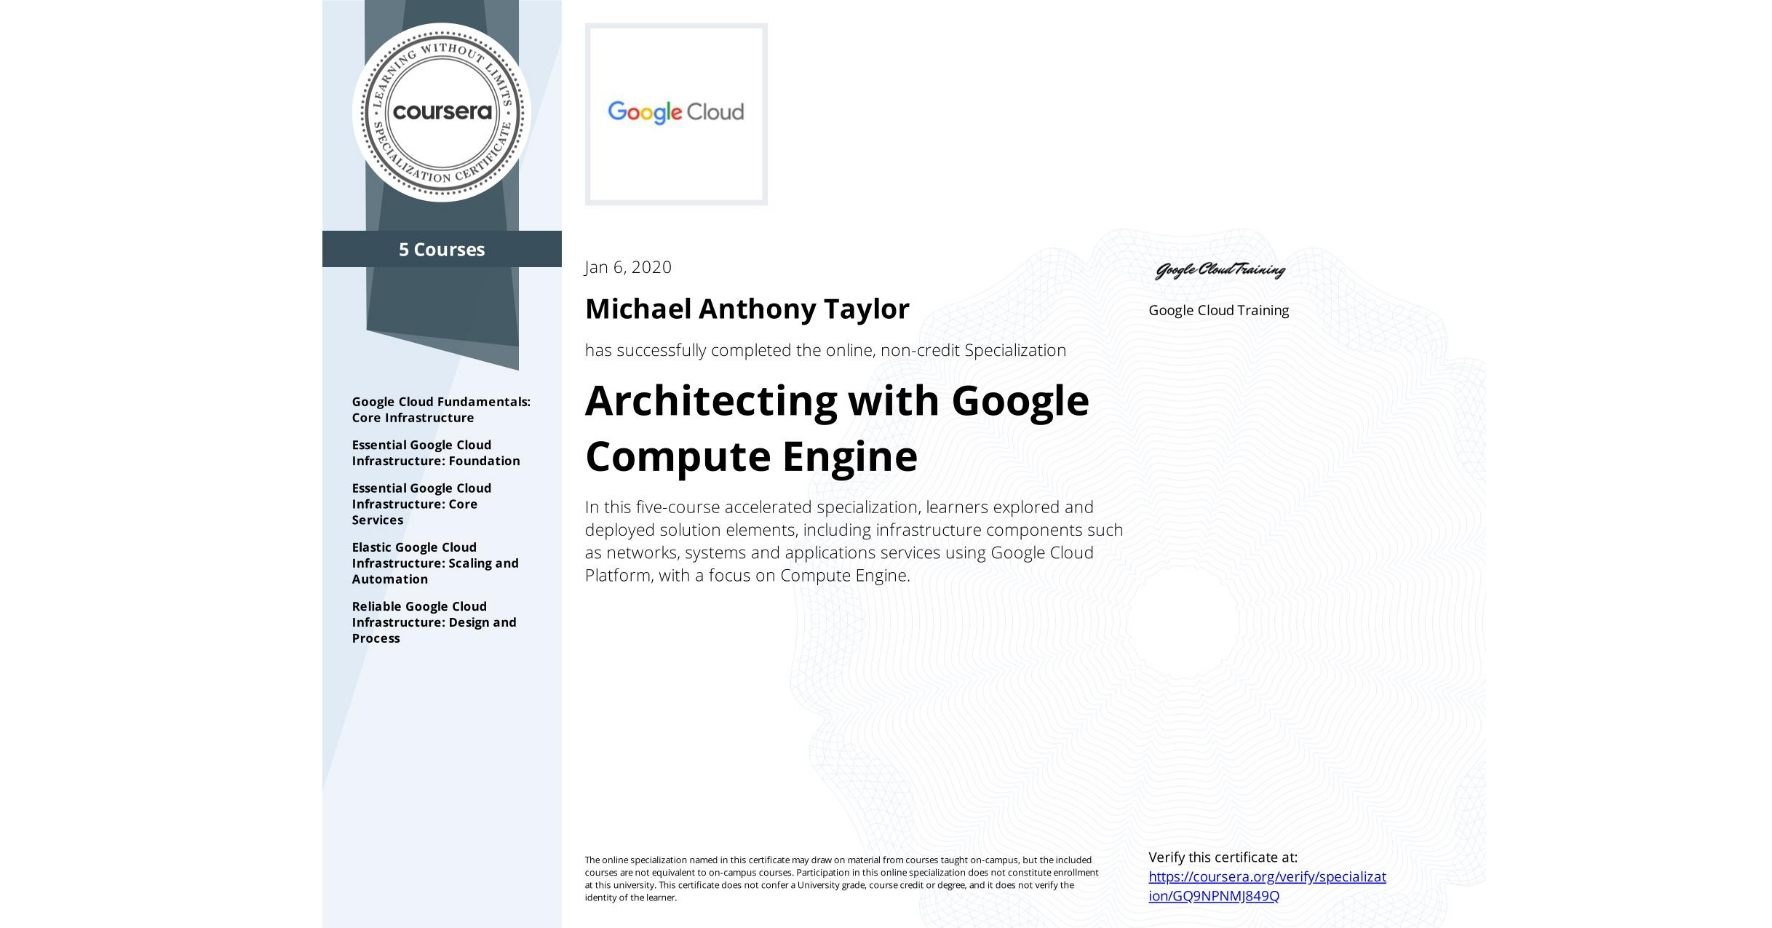 View certificate for Michael Anthony Taylor, Architecting with Google Compute Engine, offered through Coursera. In this five-course accelerated specialization, learners explored and deployed solution elements, including infrastructure components such as networks, systems and applications services using Google Cloud Platform, with a focus on Compute Engine.